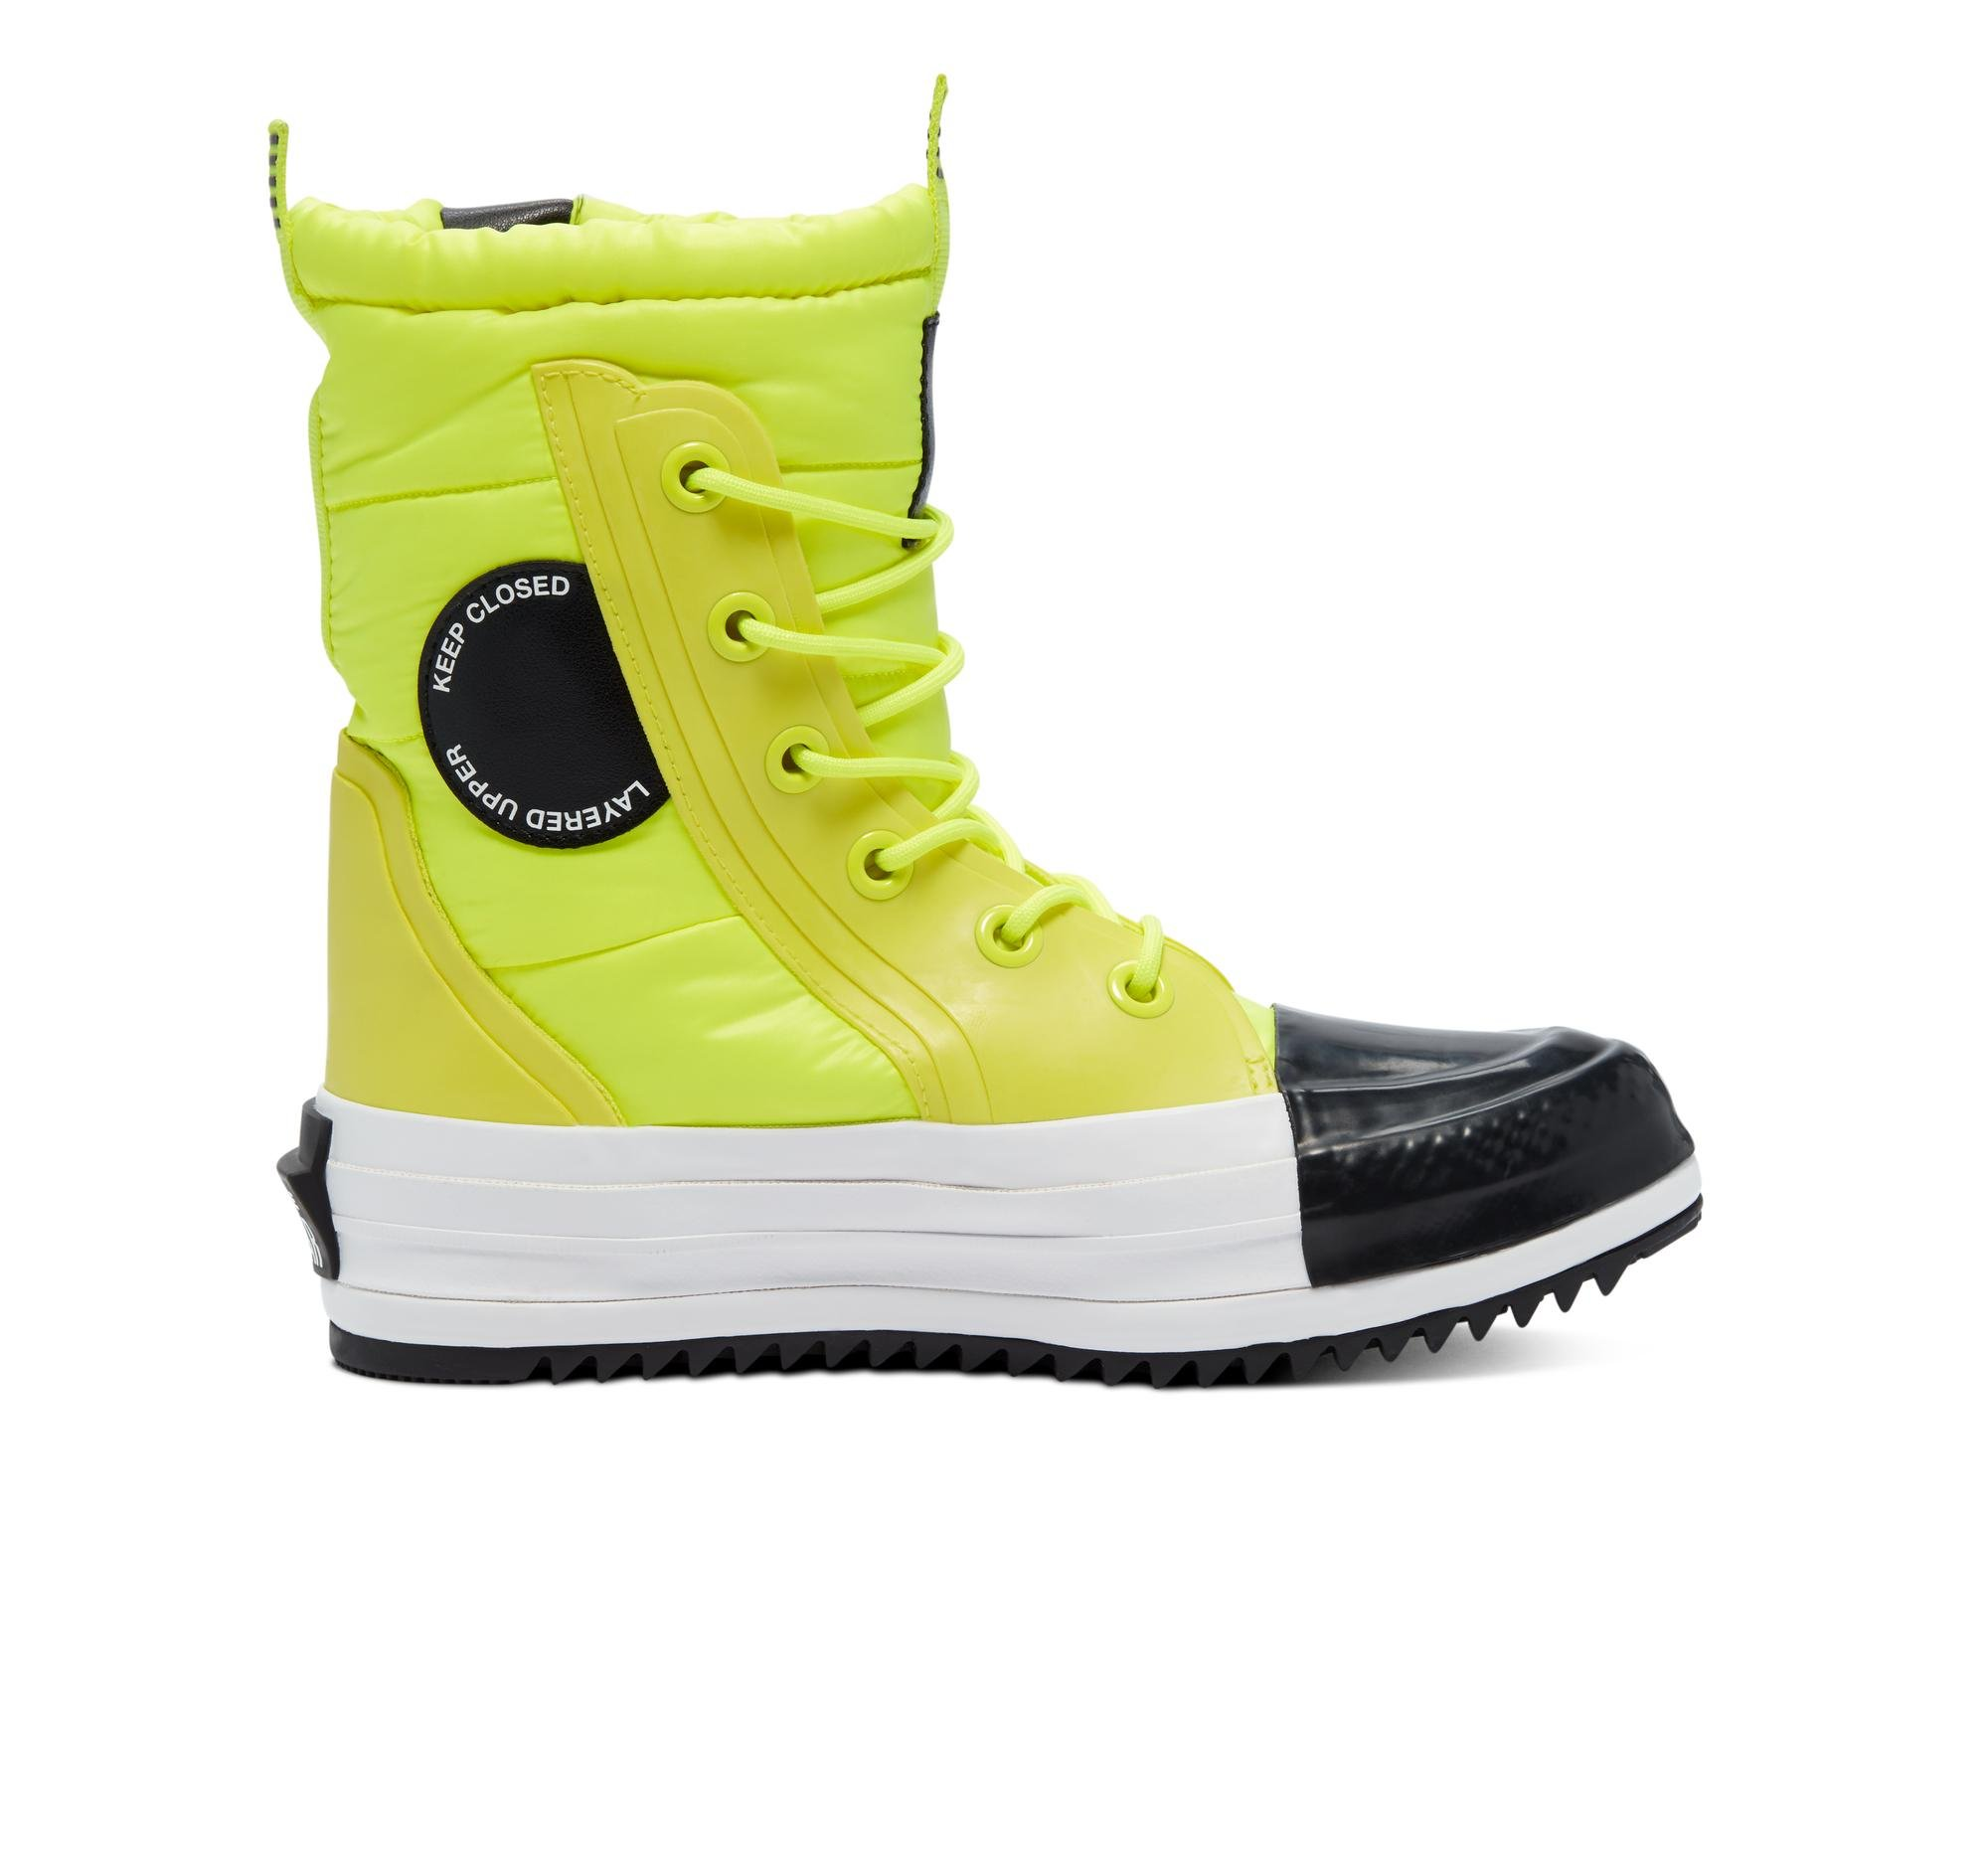 converse all star maculate